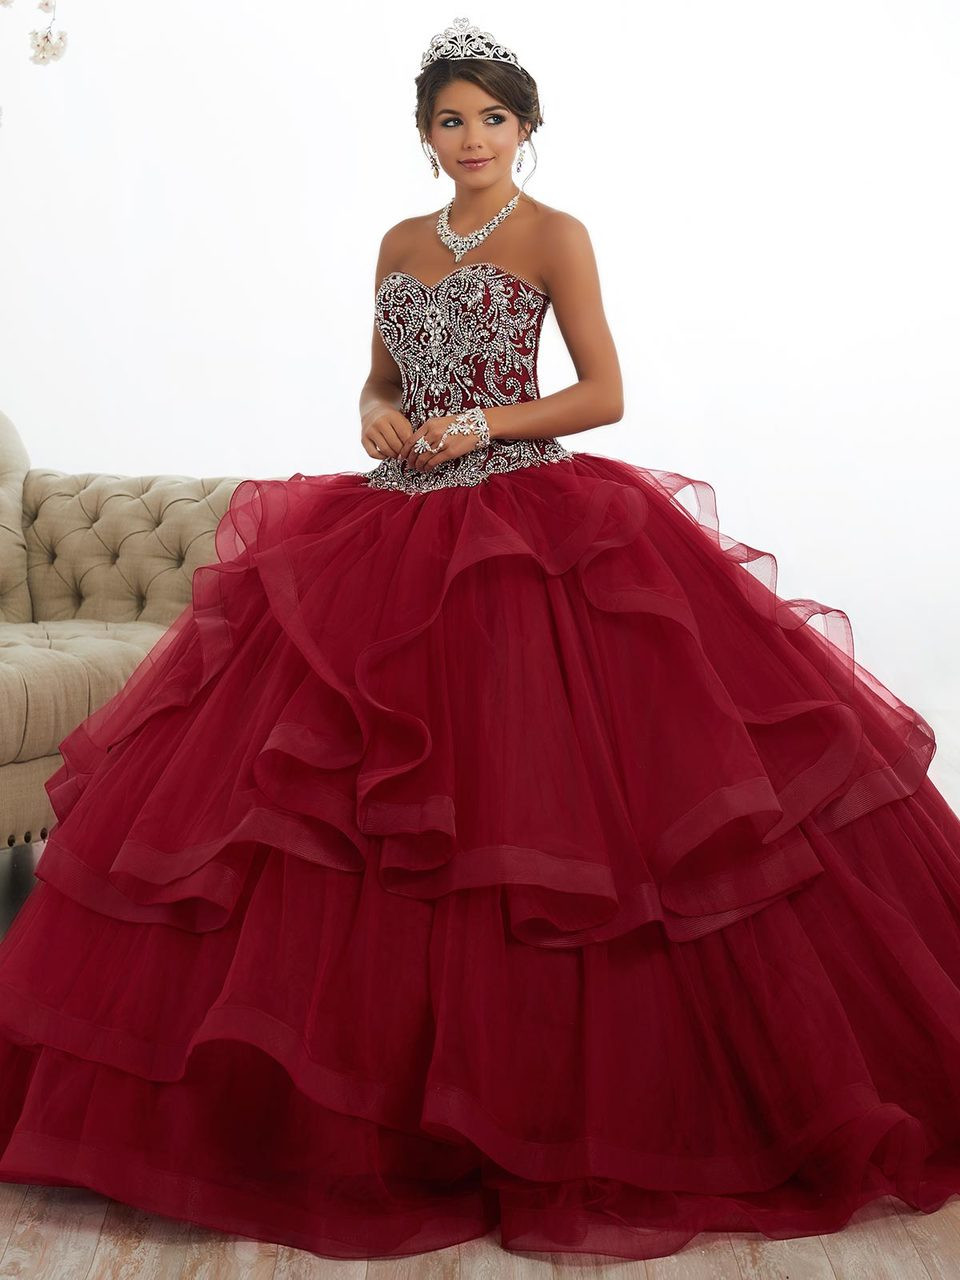 32e35241ae8 Sweetheart Ball Gown Tiffany Quinceanera Dress 26891 ...